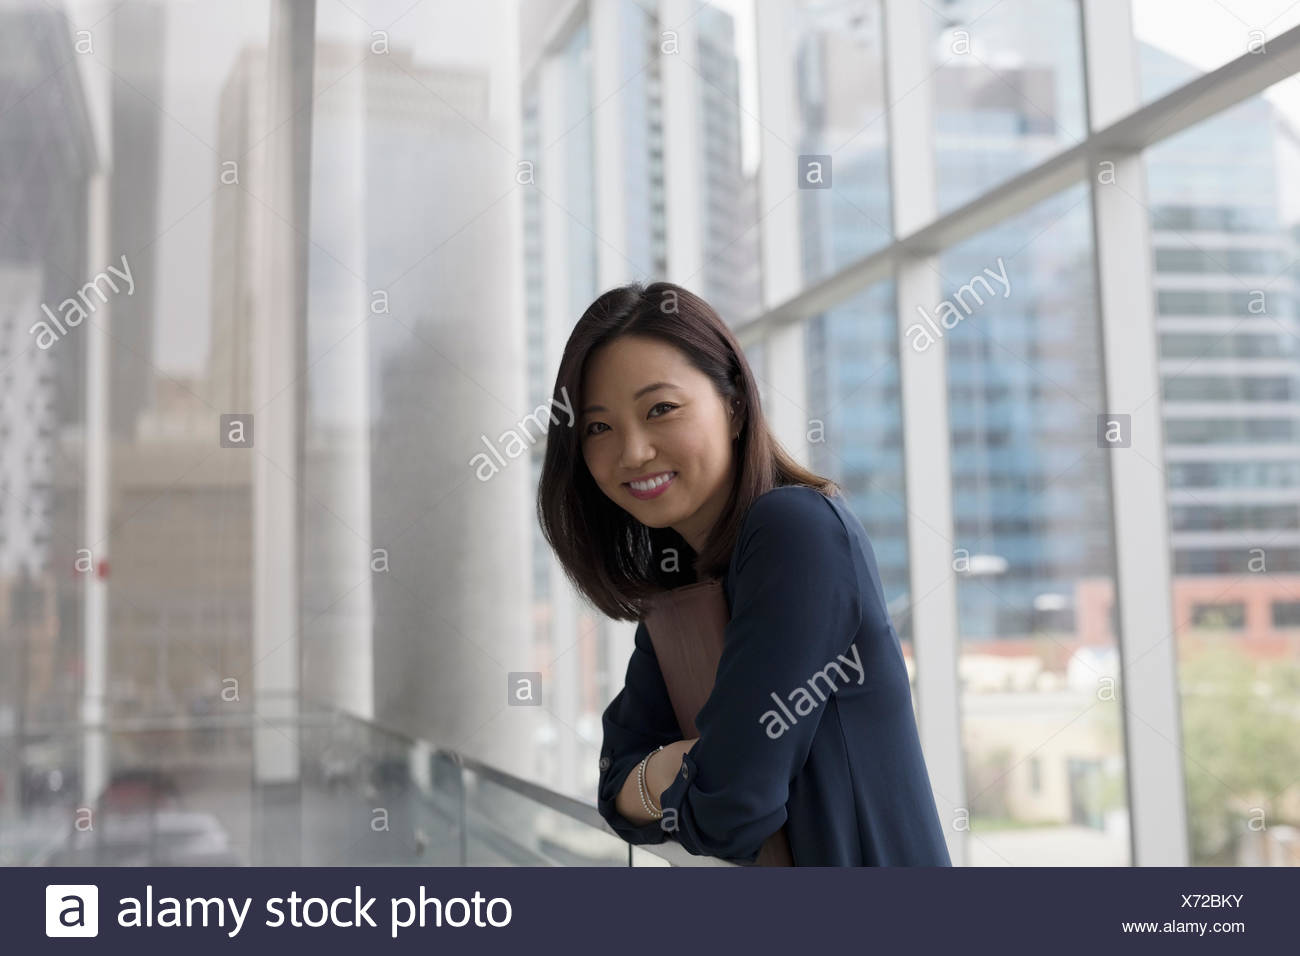 Portrait smiling businesswoman in highrise office corridor - Stock Image